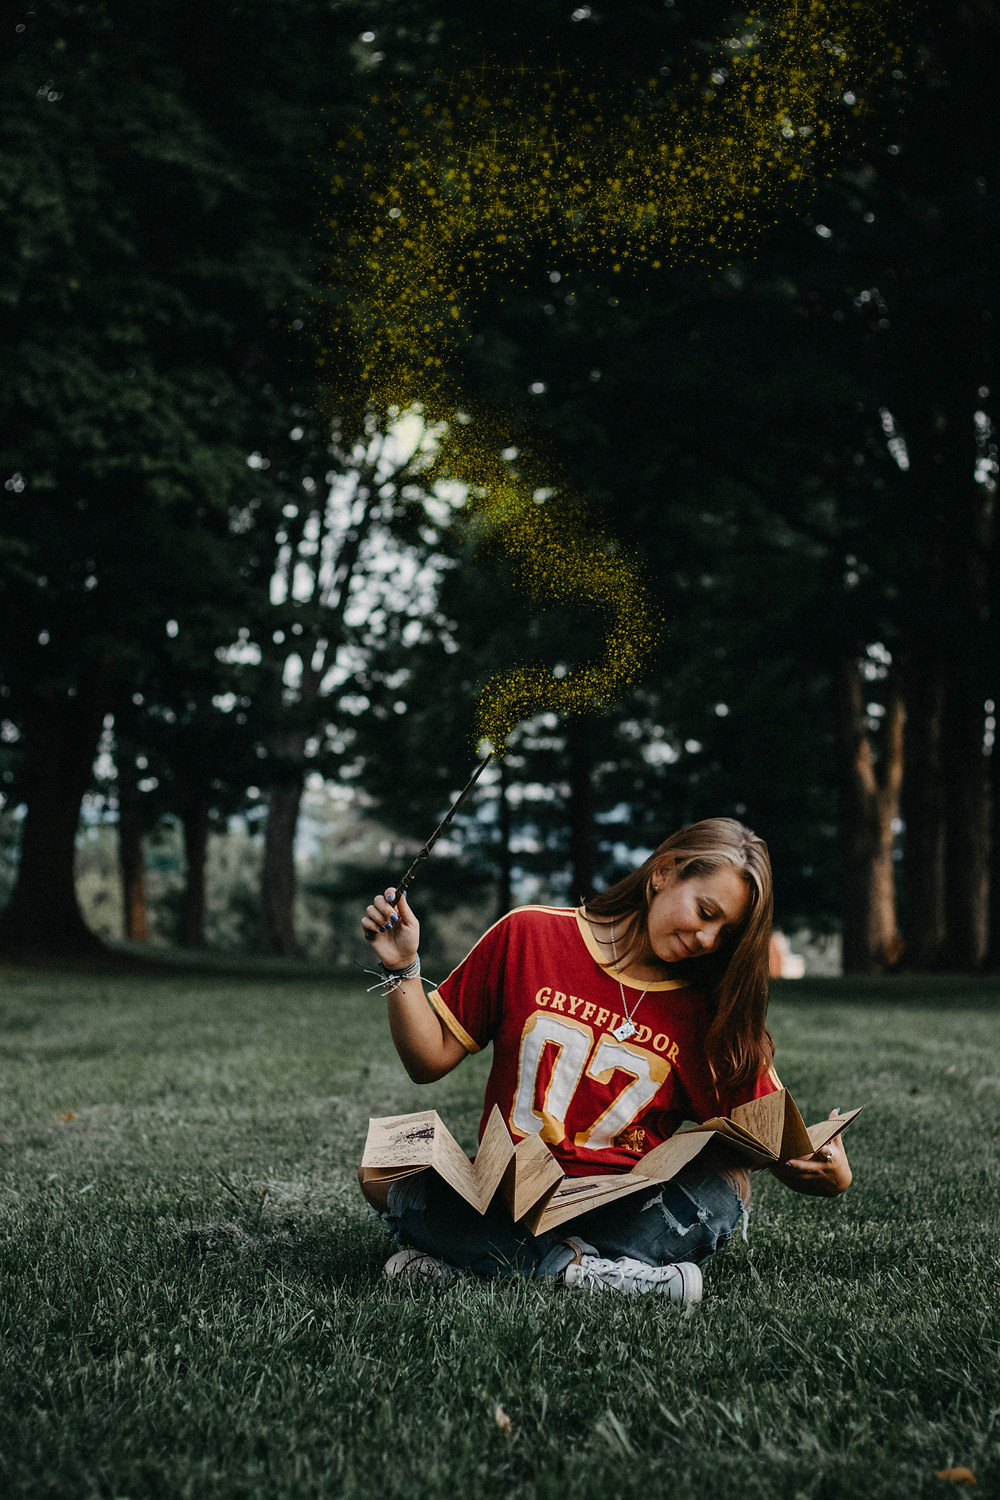 Harry Potter themed High School Senior Photography Session in York, PA by Taylor Slusser Photography